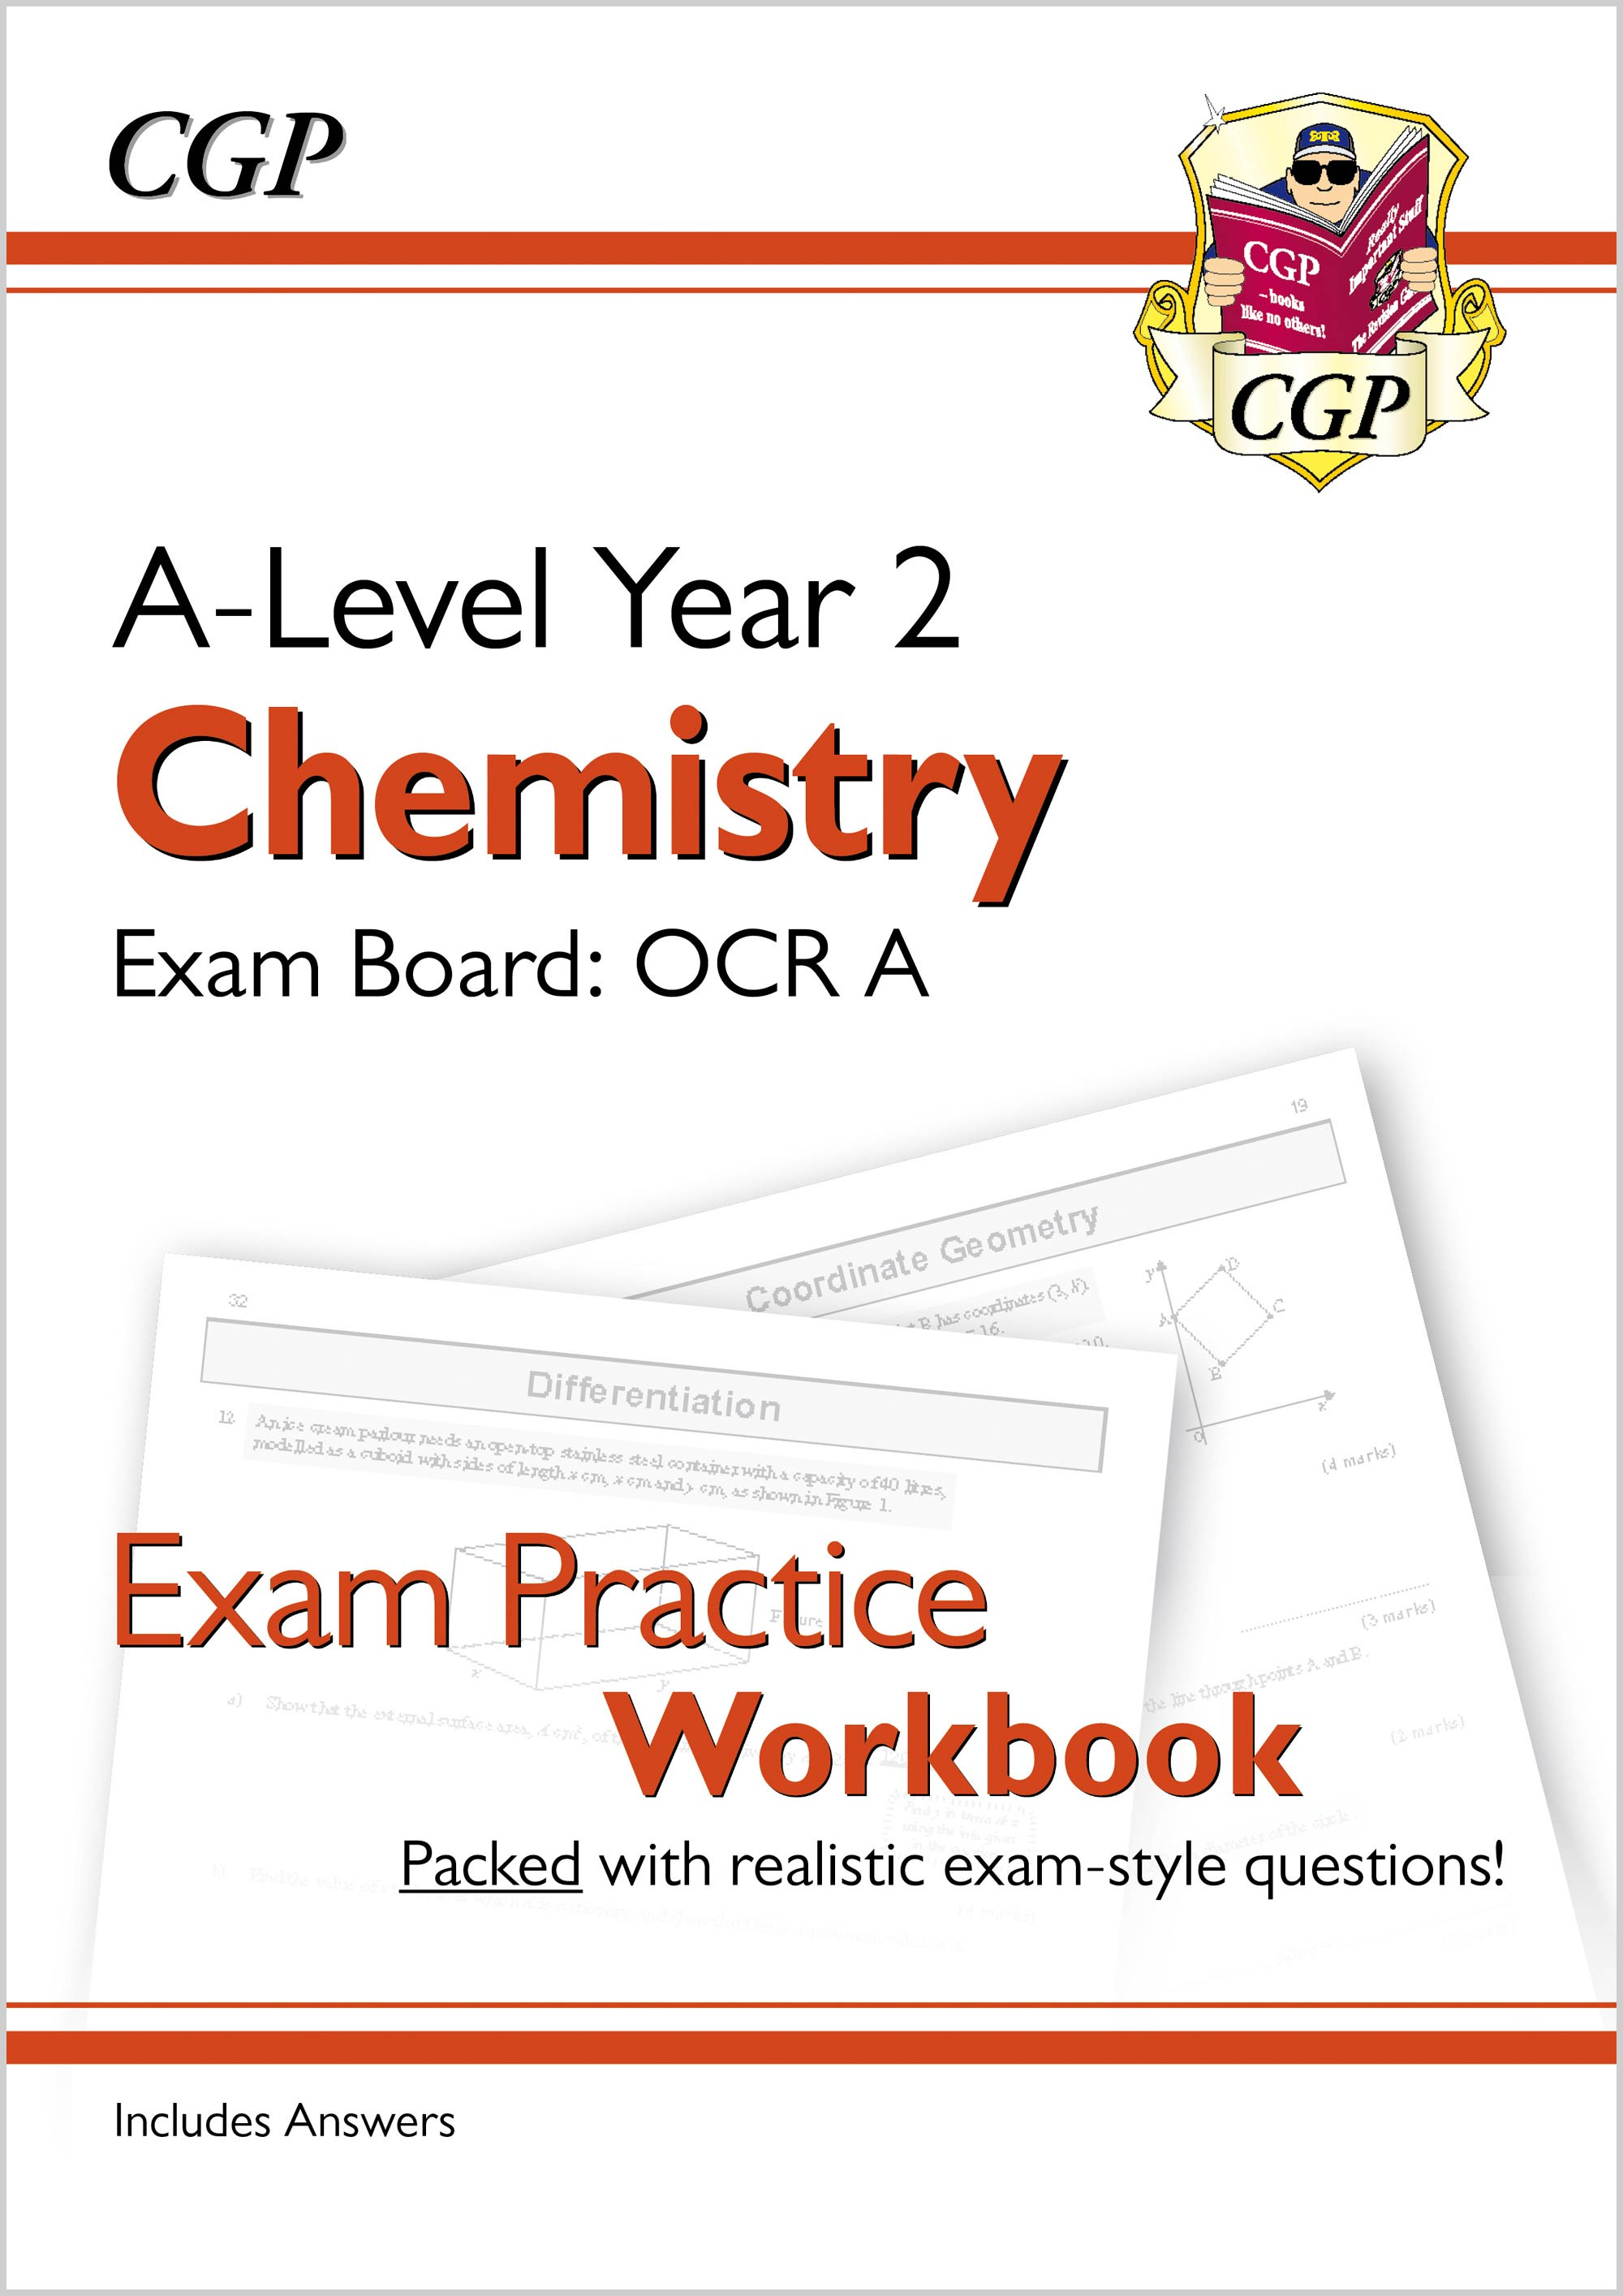 CRAQ61 - A-Level Chemistry: OCR A Year 2 Exam Practice Workbook - includes Answers